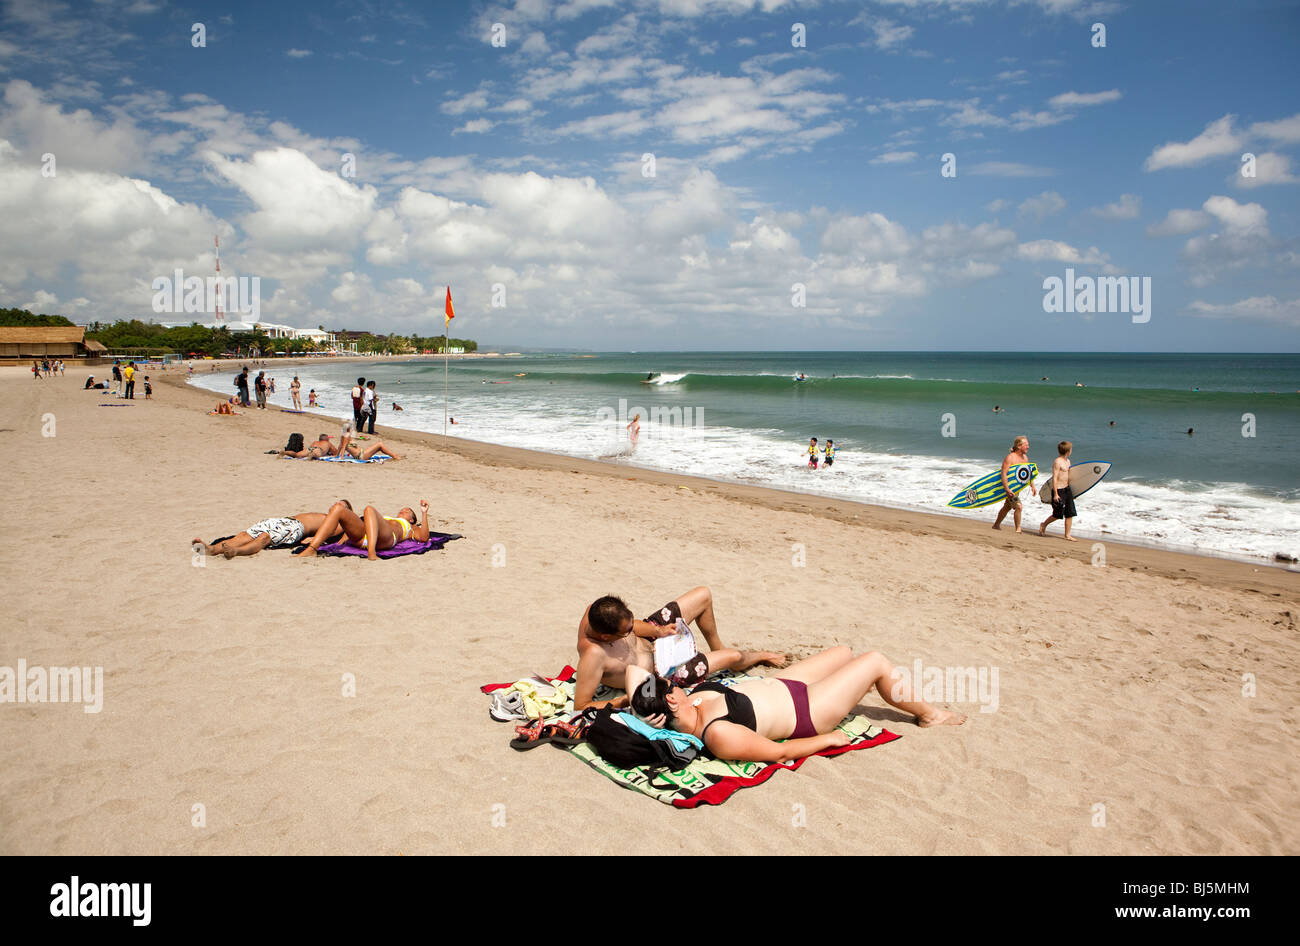 Image Result For Surf Vacation Bali